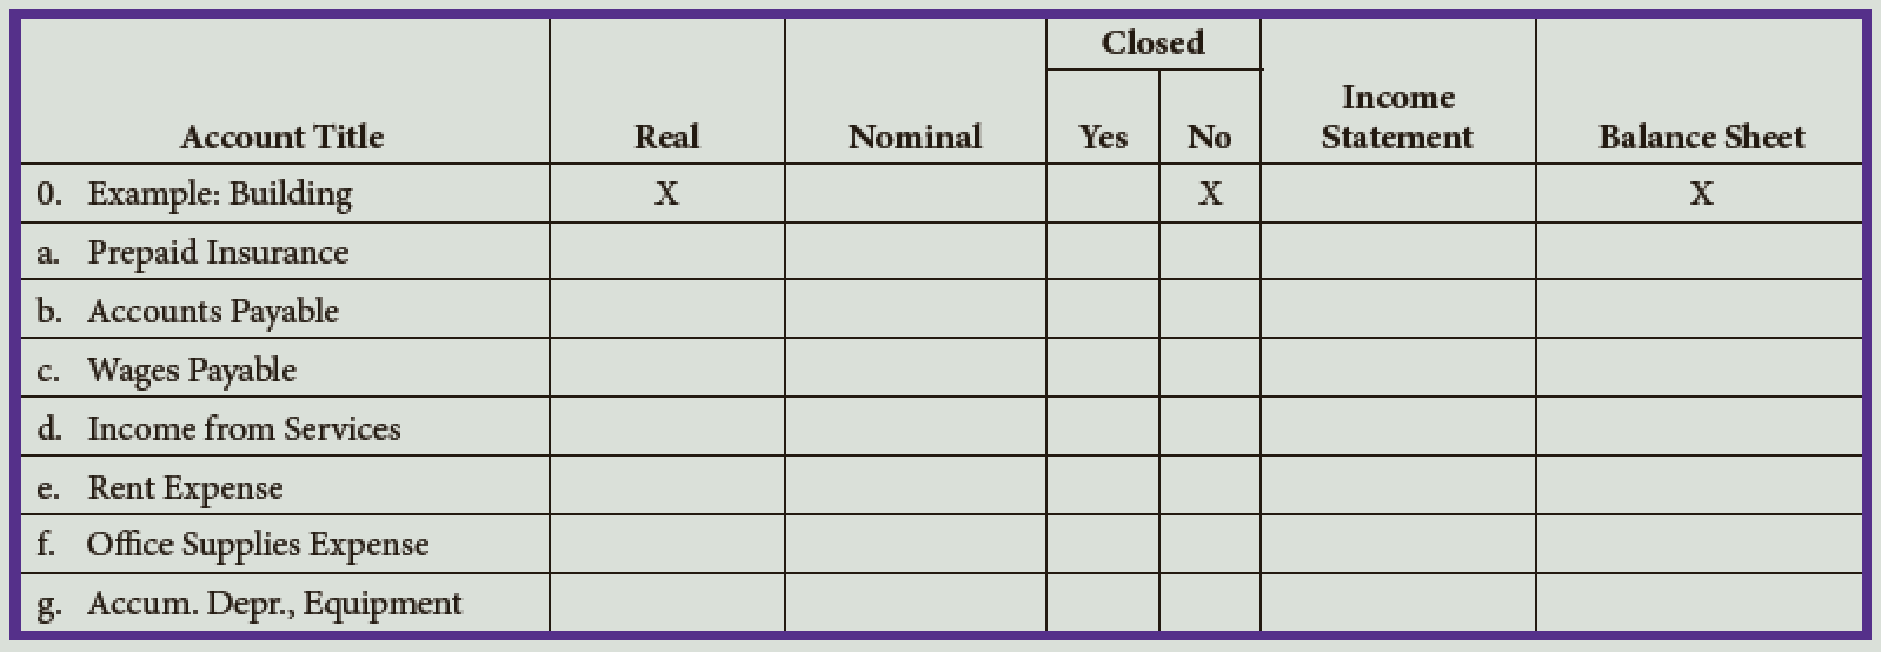 Chapter 5, Problem 1E, Classify the following accounts as real (permanent) or nominal (temporary) and indicate with an X